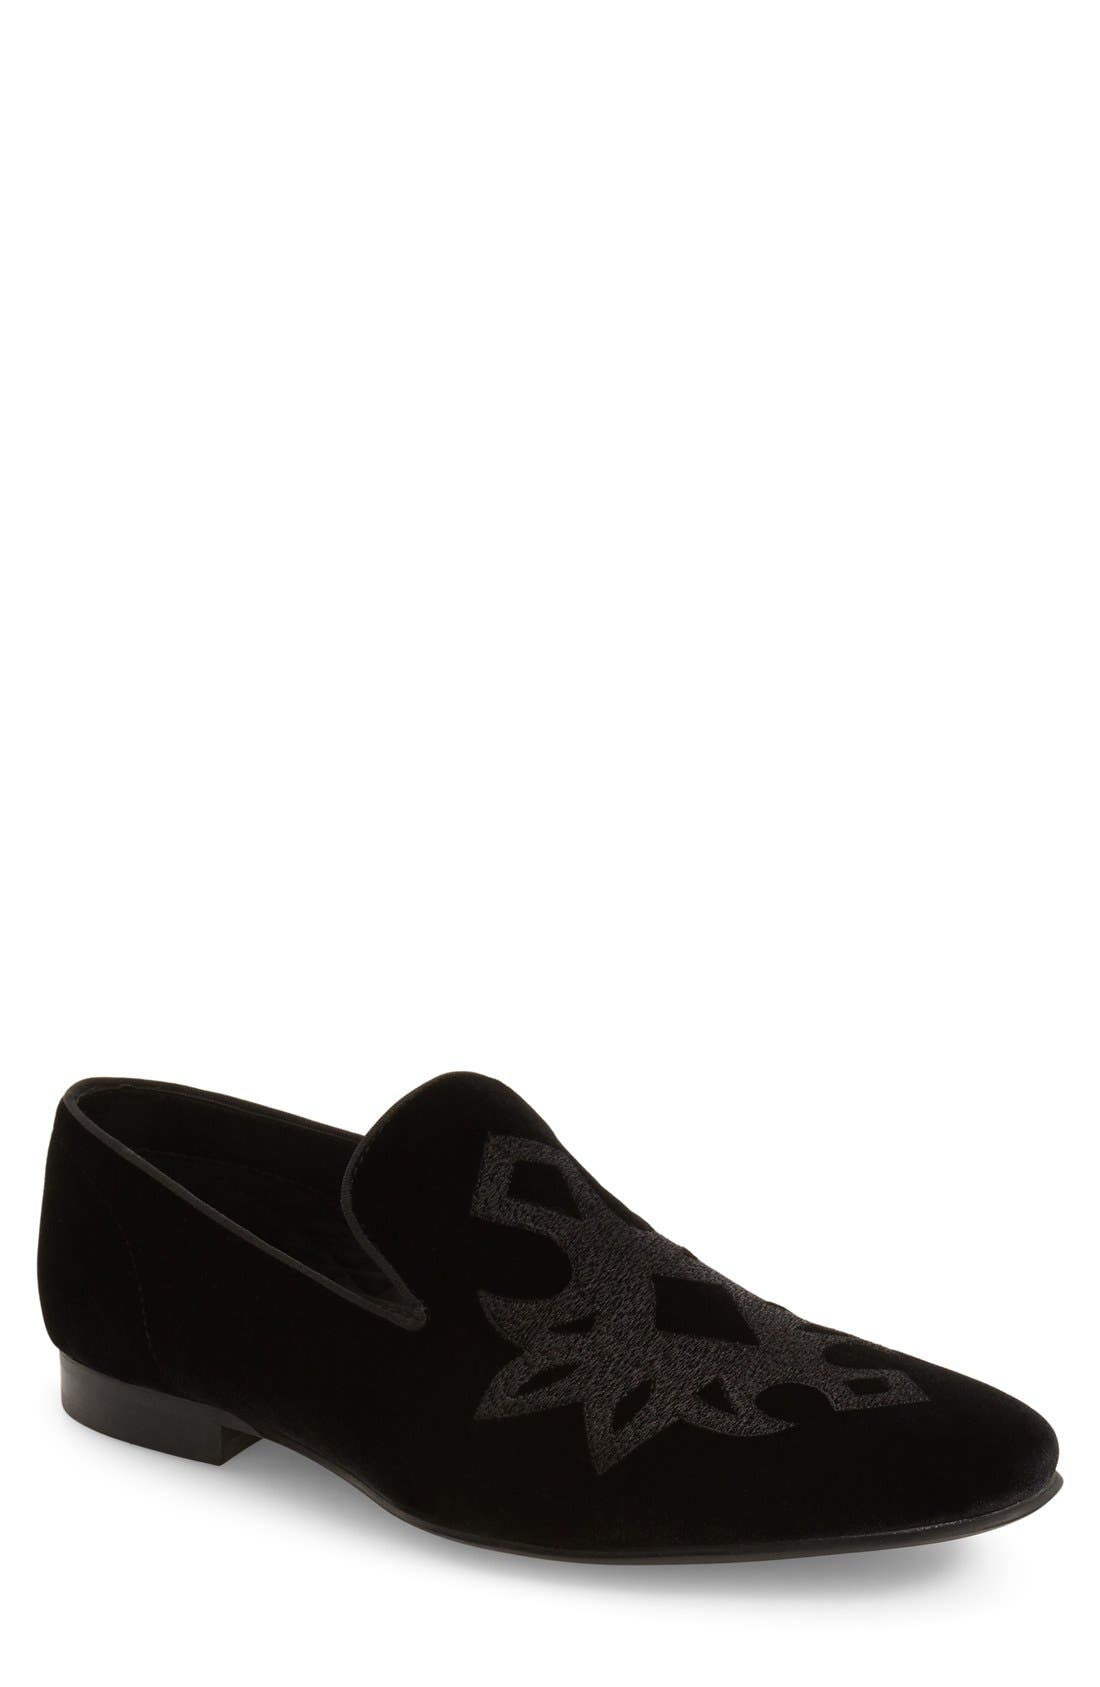 Lorax Venetian Loafer,                         Main,                         color, BLACK VELVET